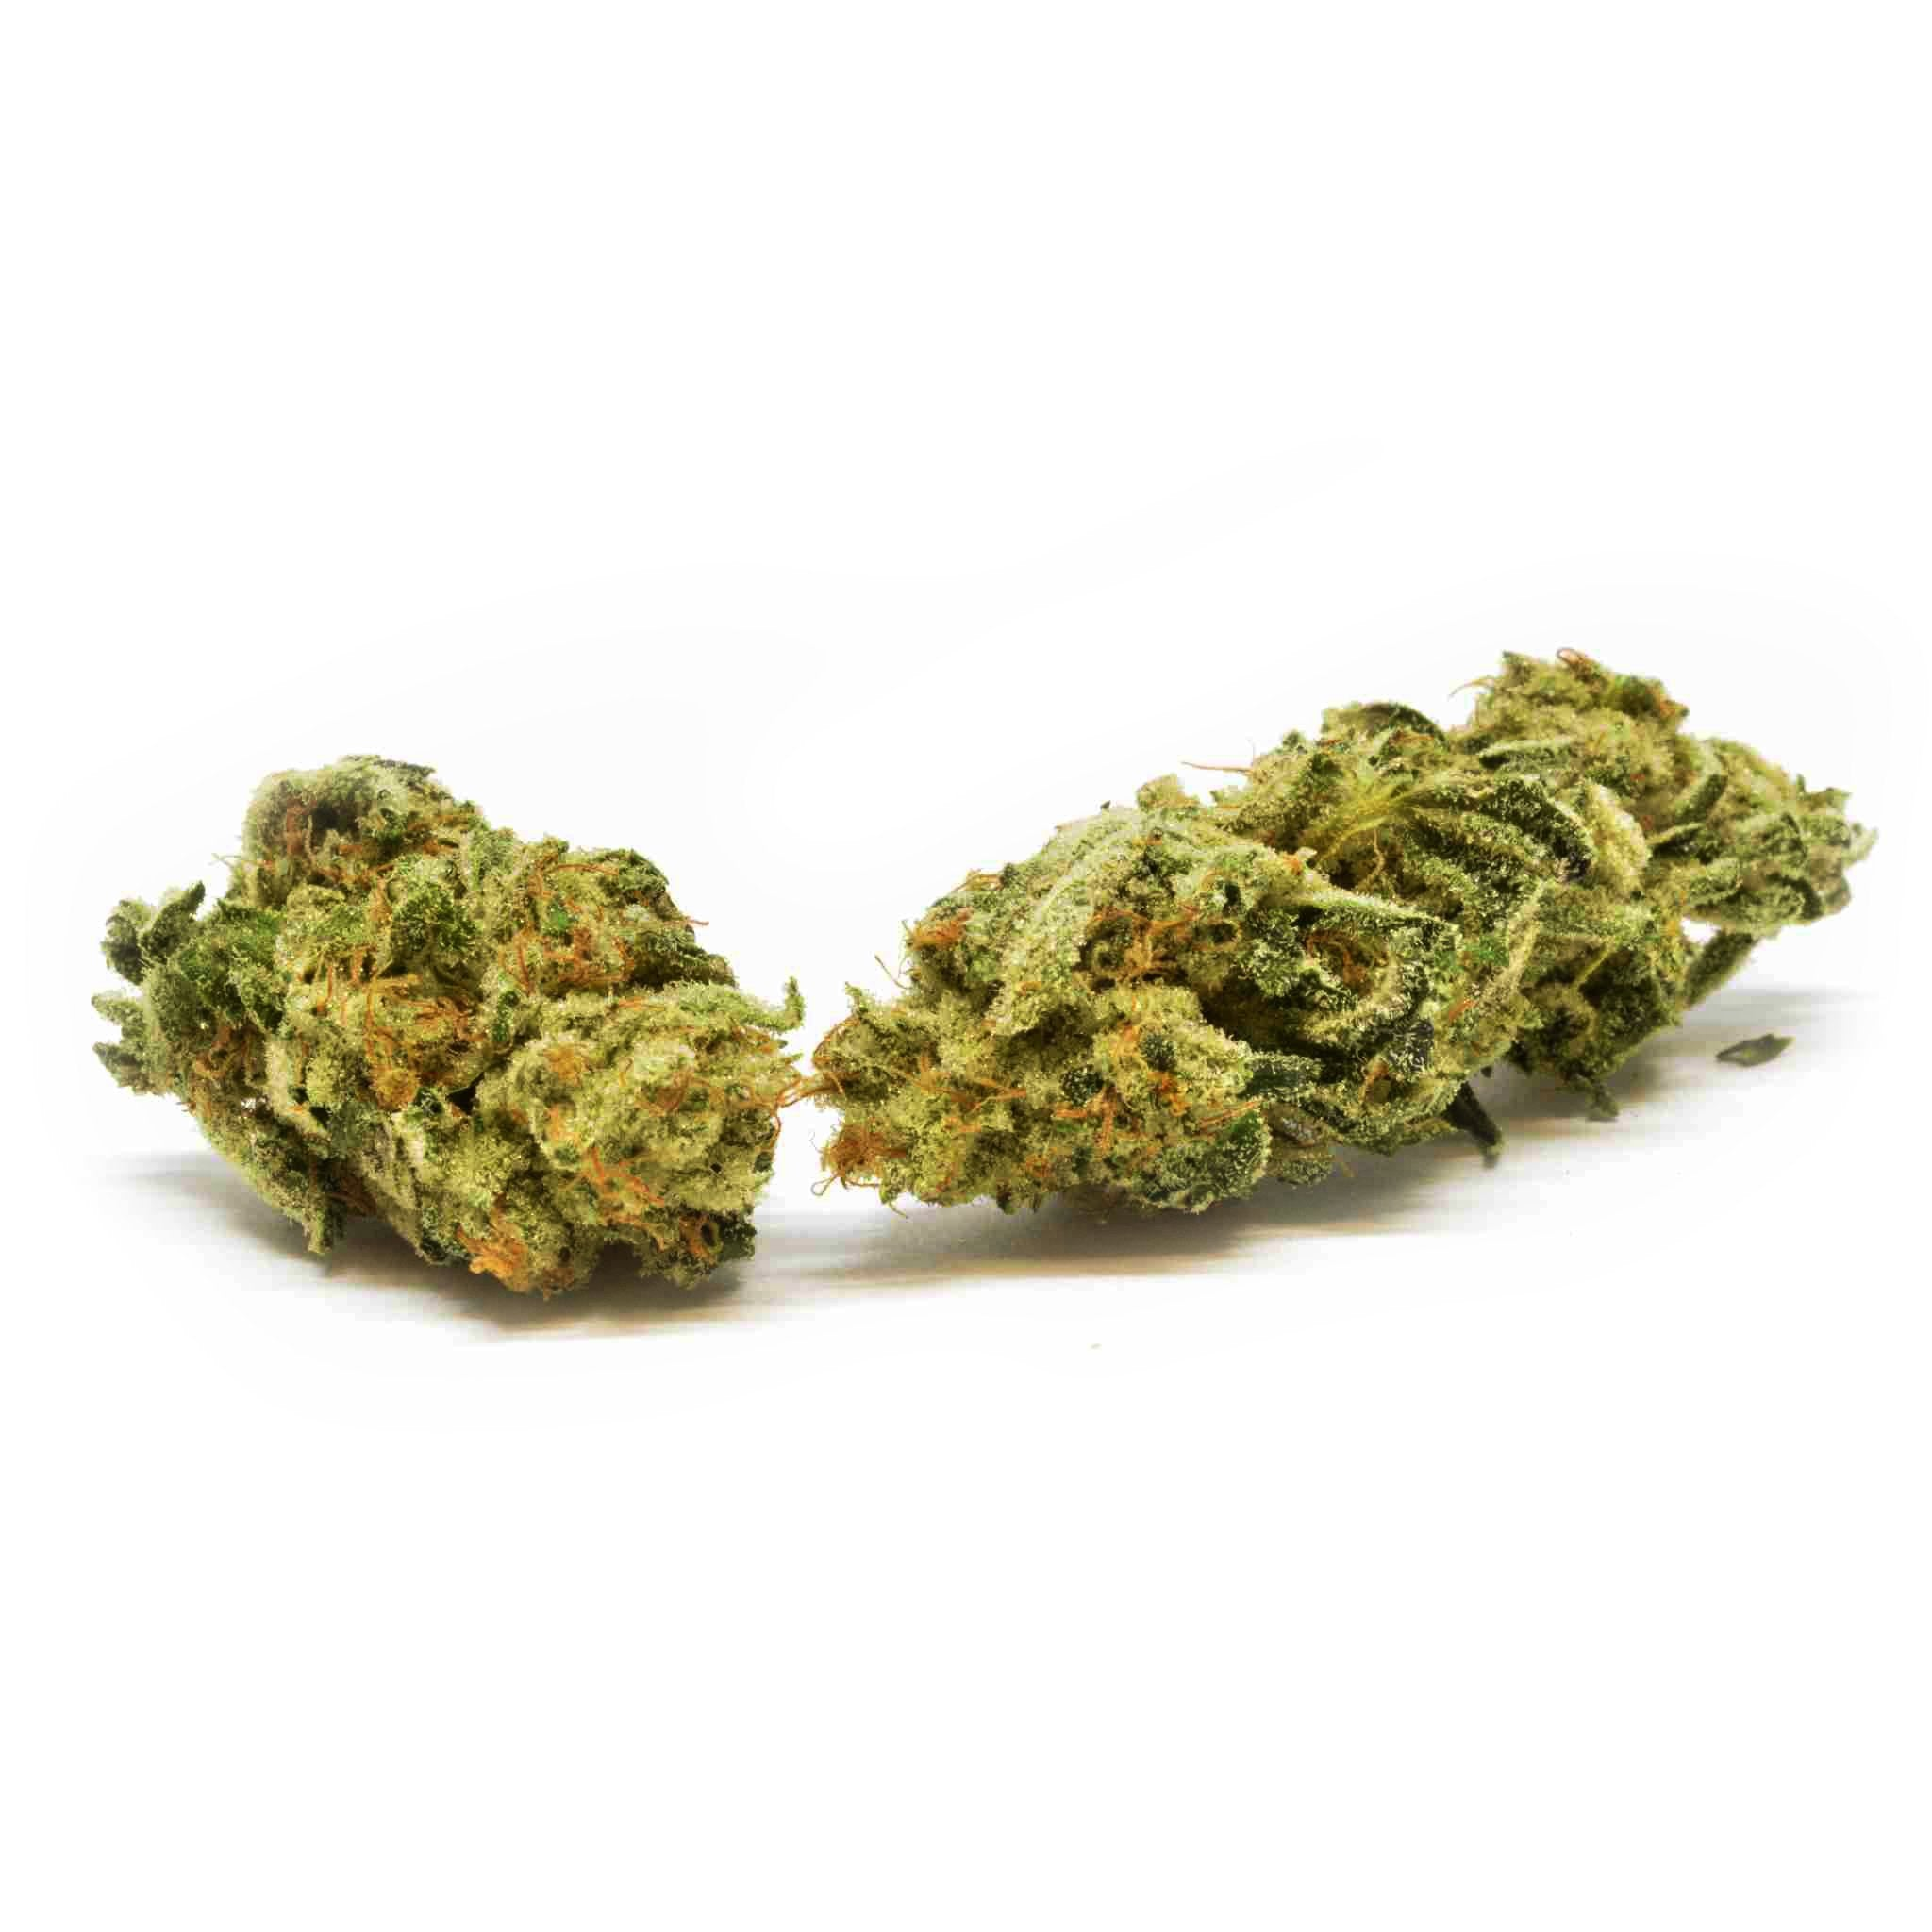 Critical Sensi Star | Swiss Botanic | CBD Cannabis | uWeed | Swiss CBD Shop